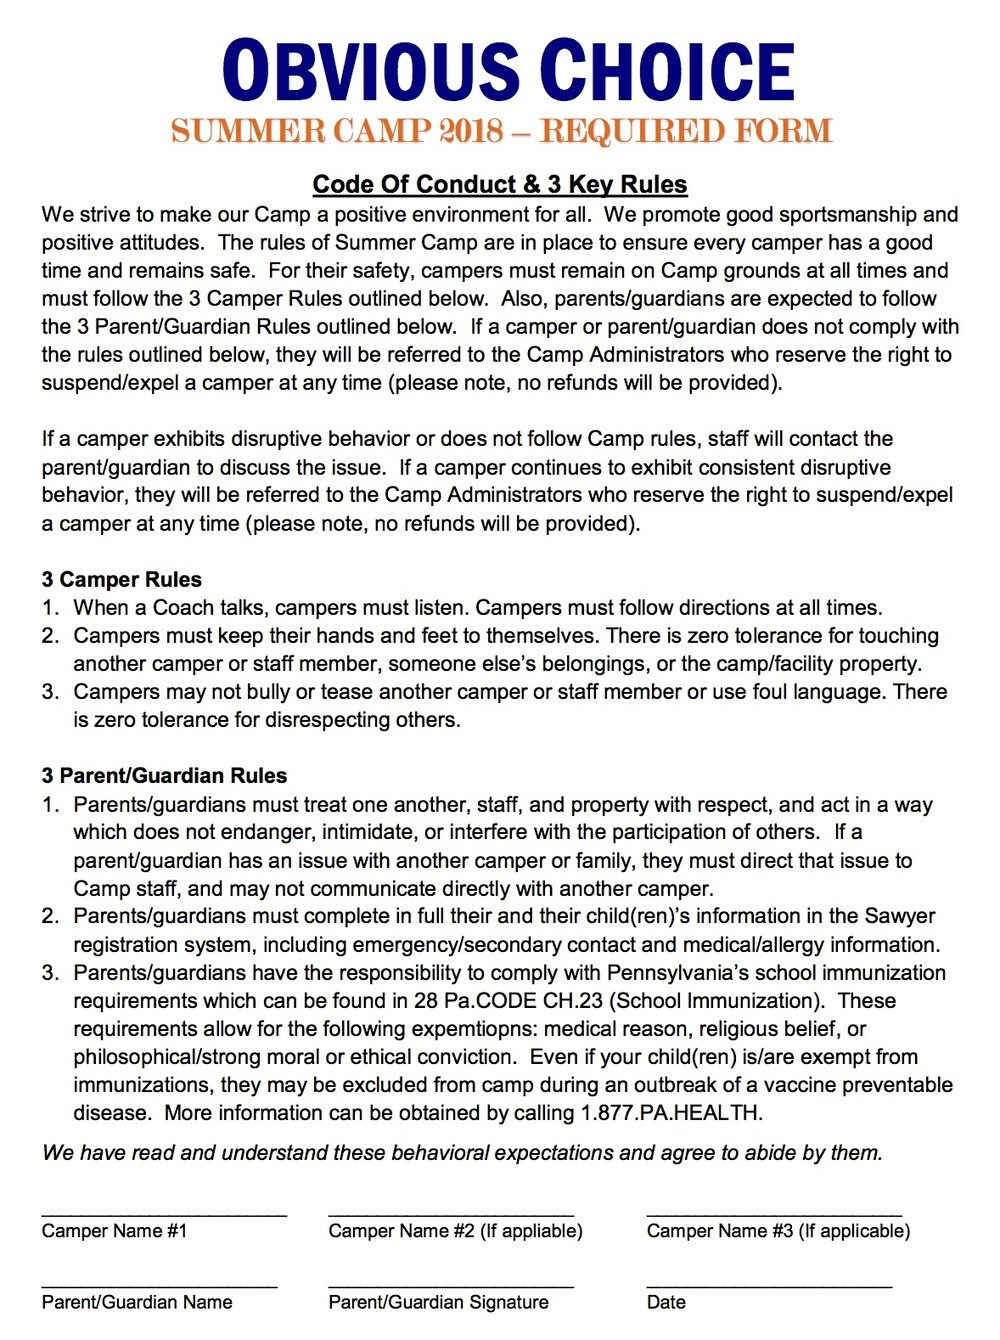 Day Camp - Website Code of Conduct - 2018.jpg